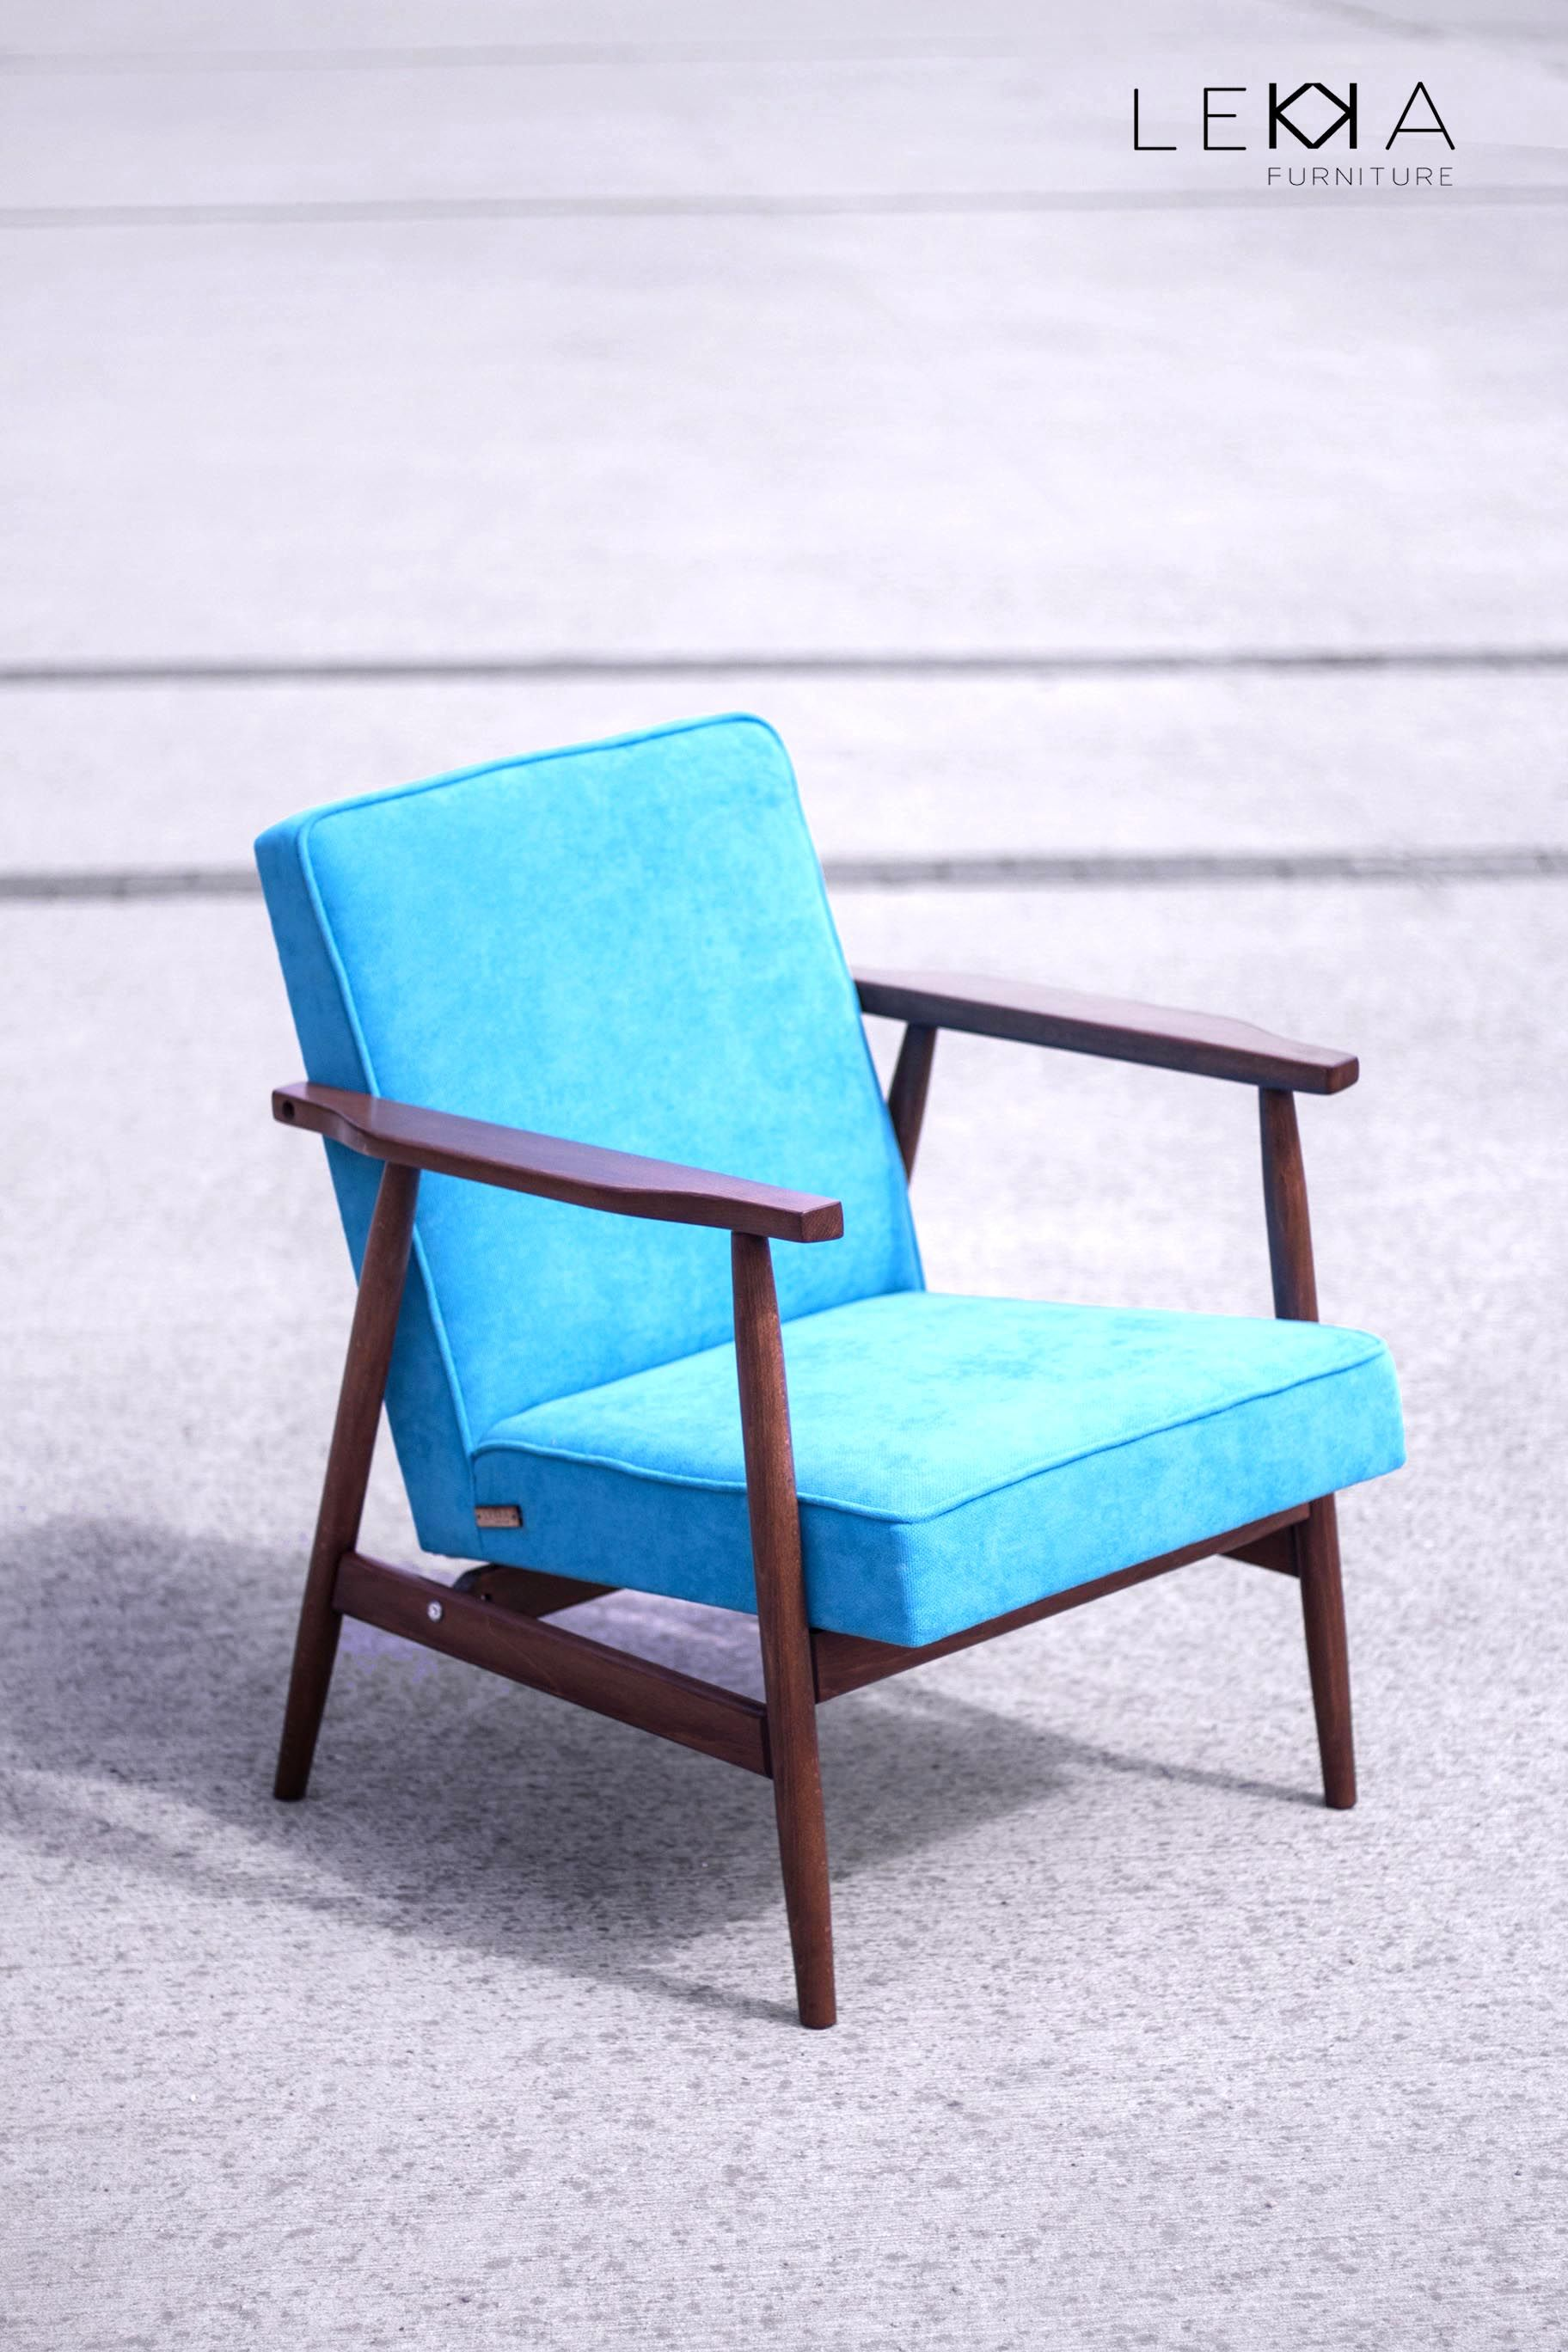 The Armchair Type B 7727 Designed By Hanna Lis Redesigned By